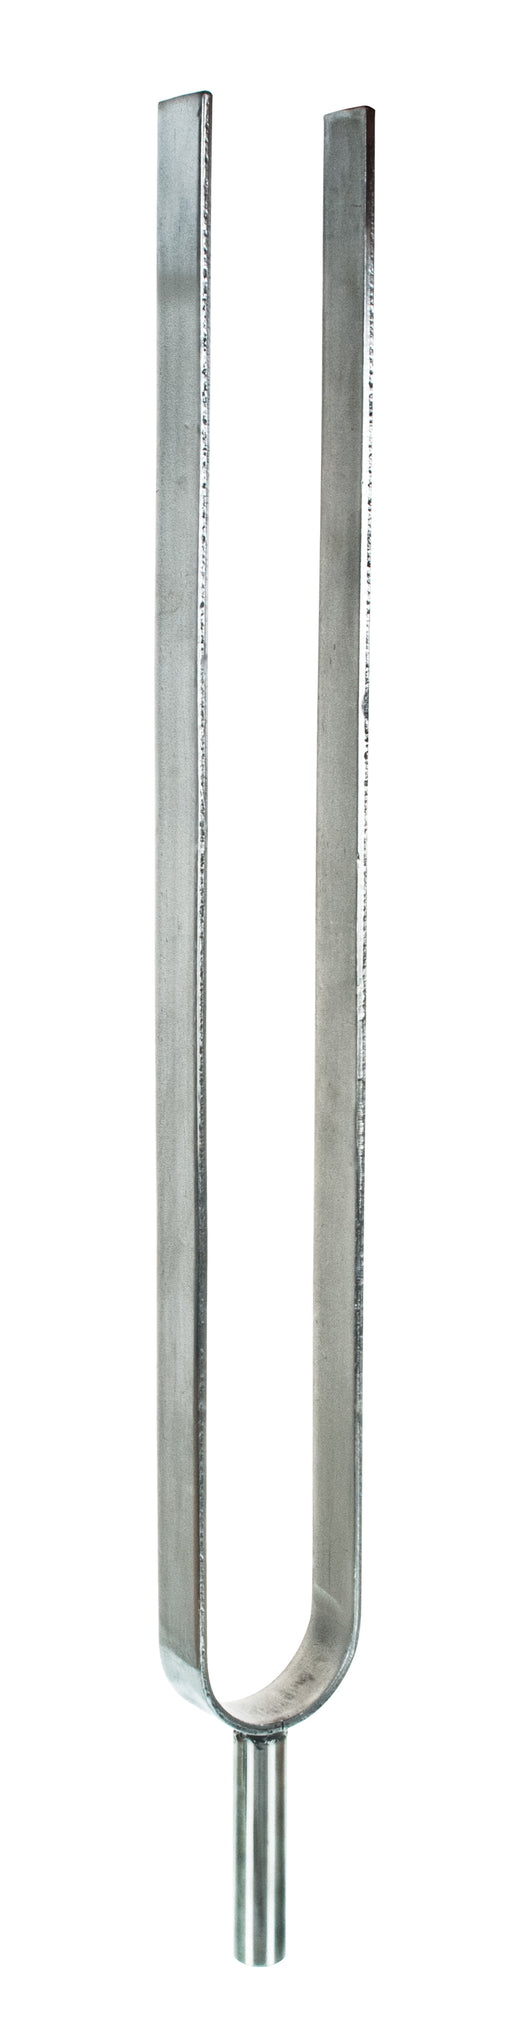 Demonstration Tuning Fork - Large